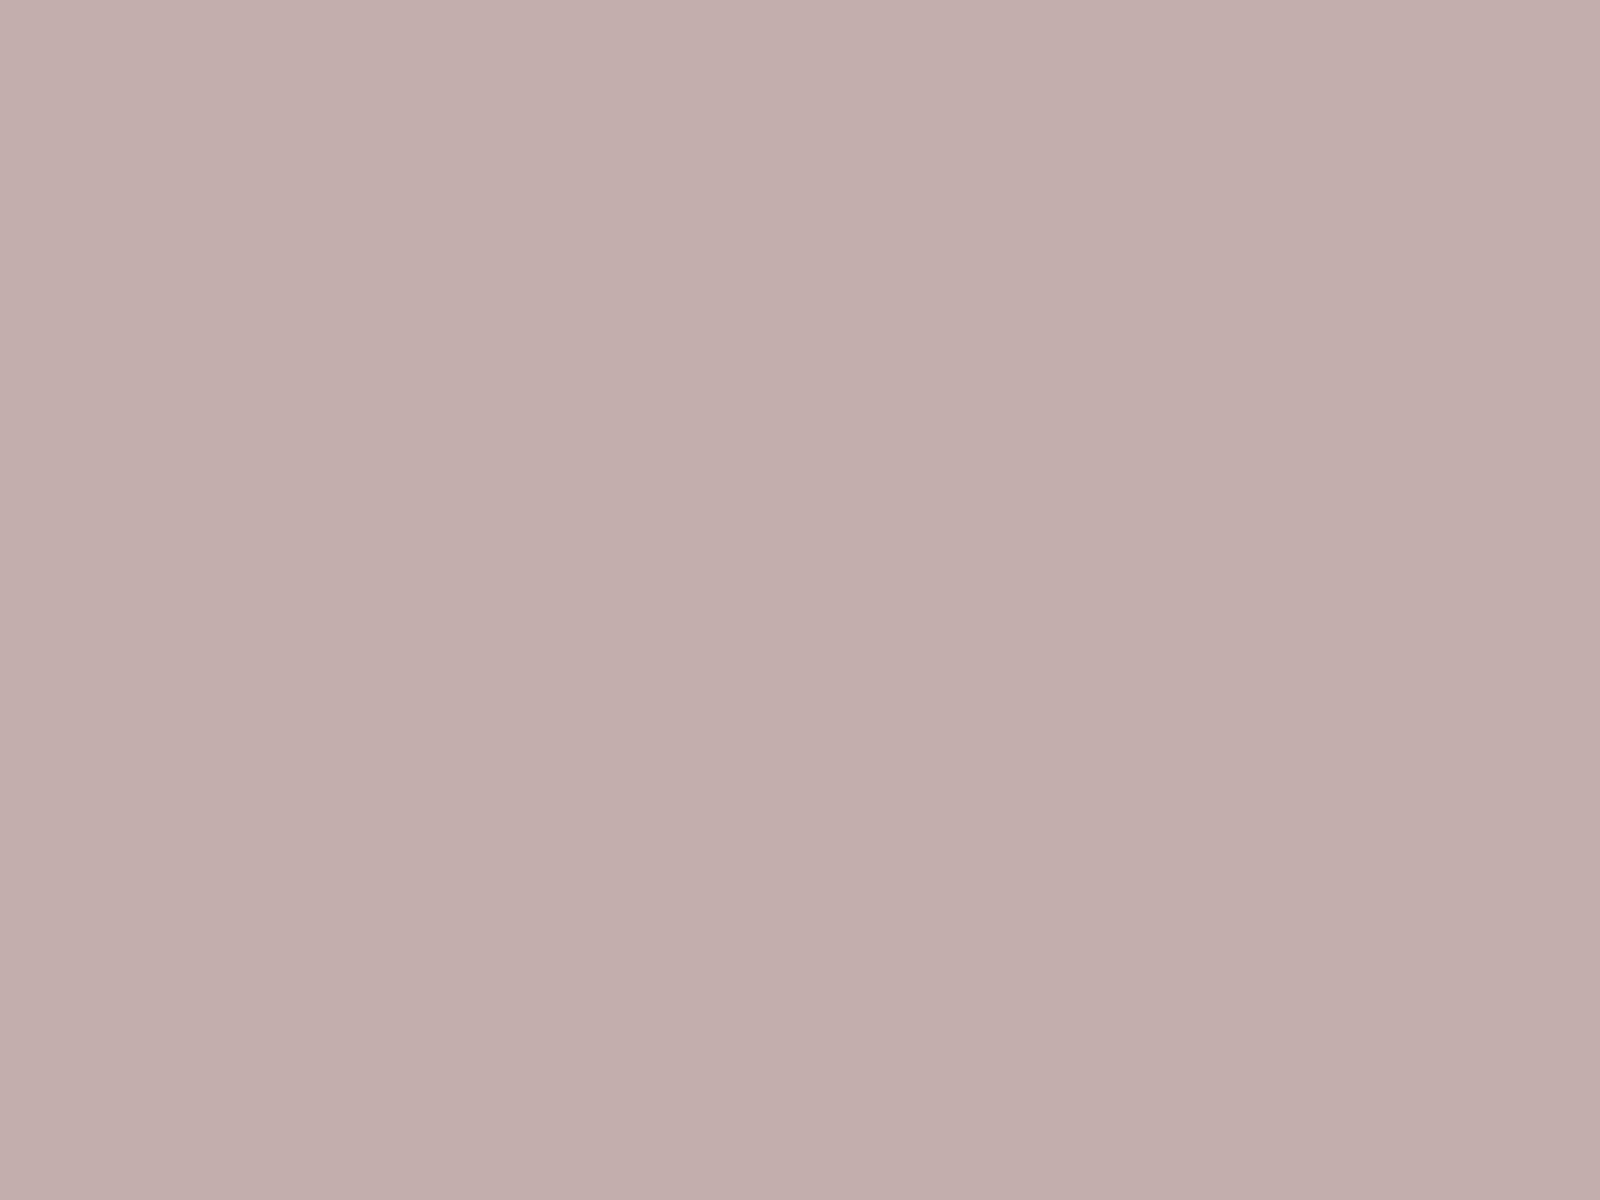 1600x1200 Silver Pink Solid Color Background